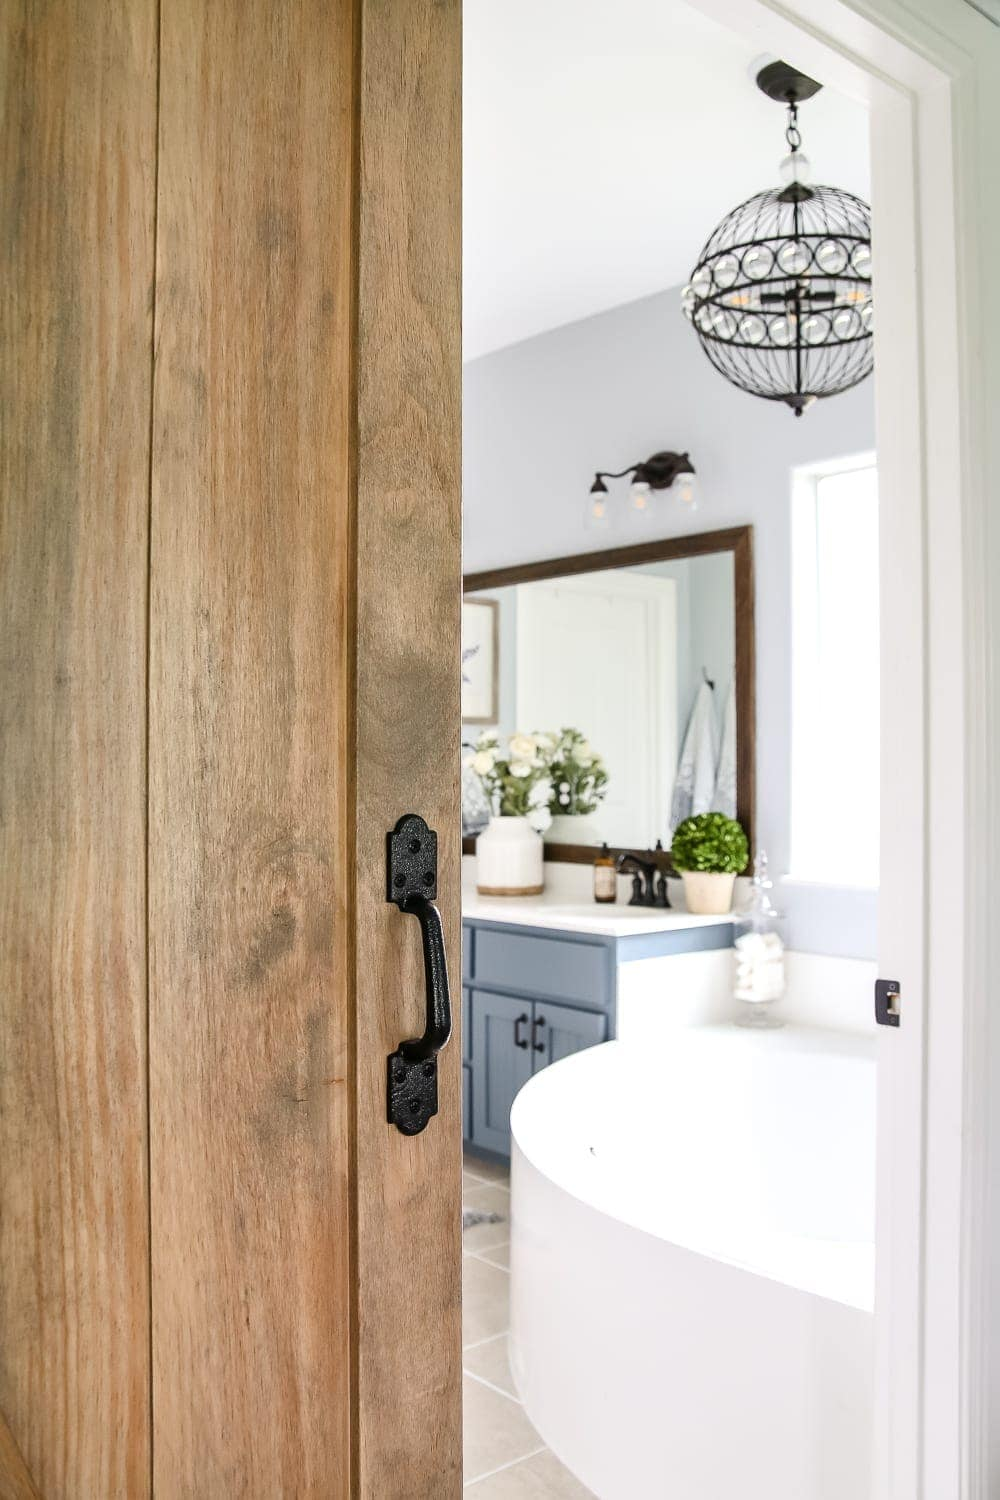 Lowe's Spring Makeover Bathroom Reveal